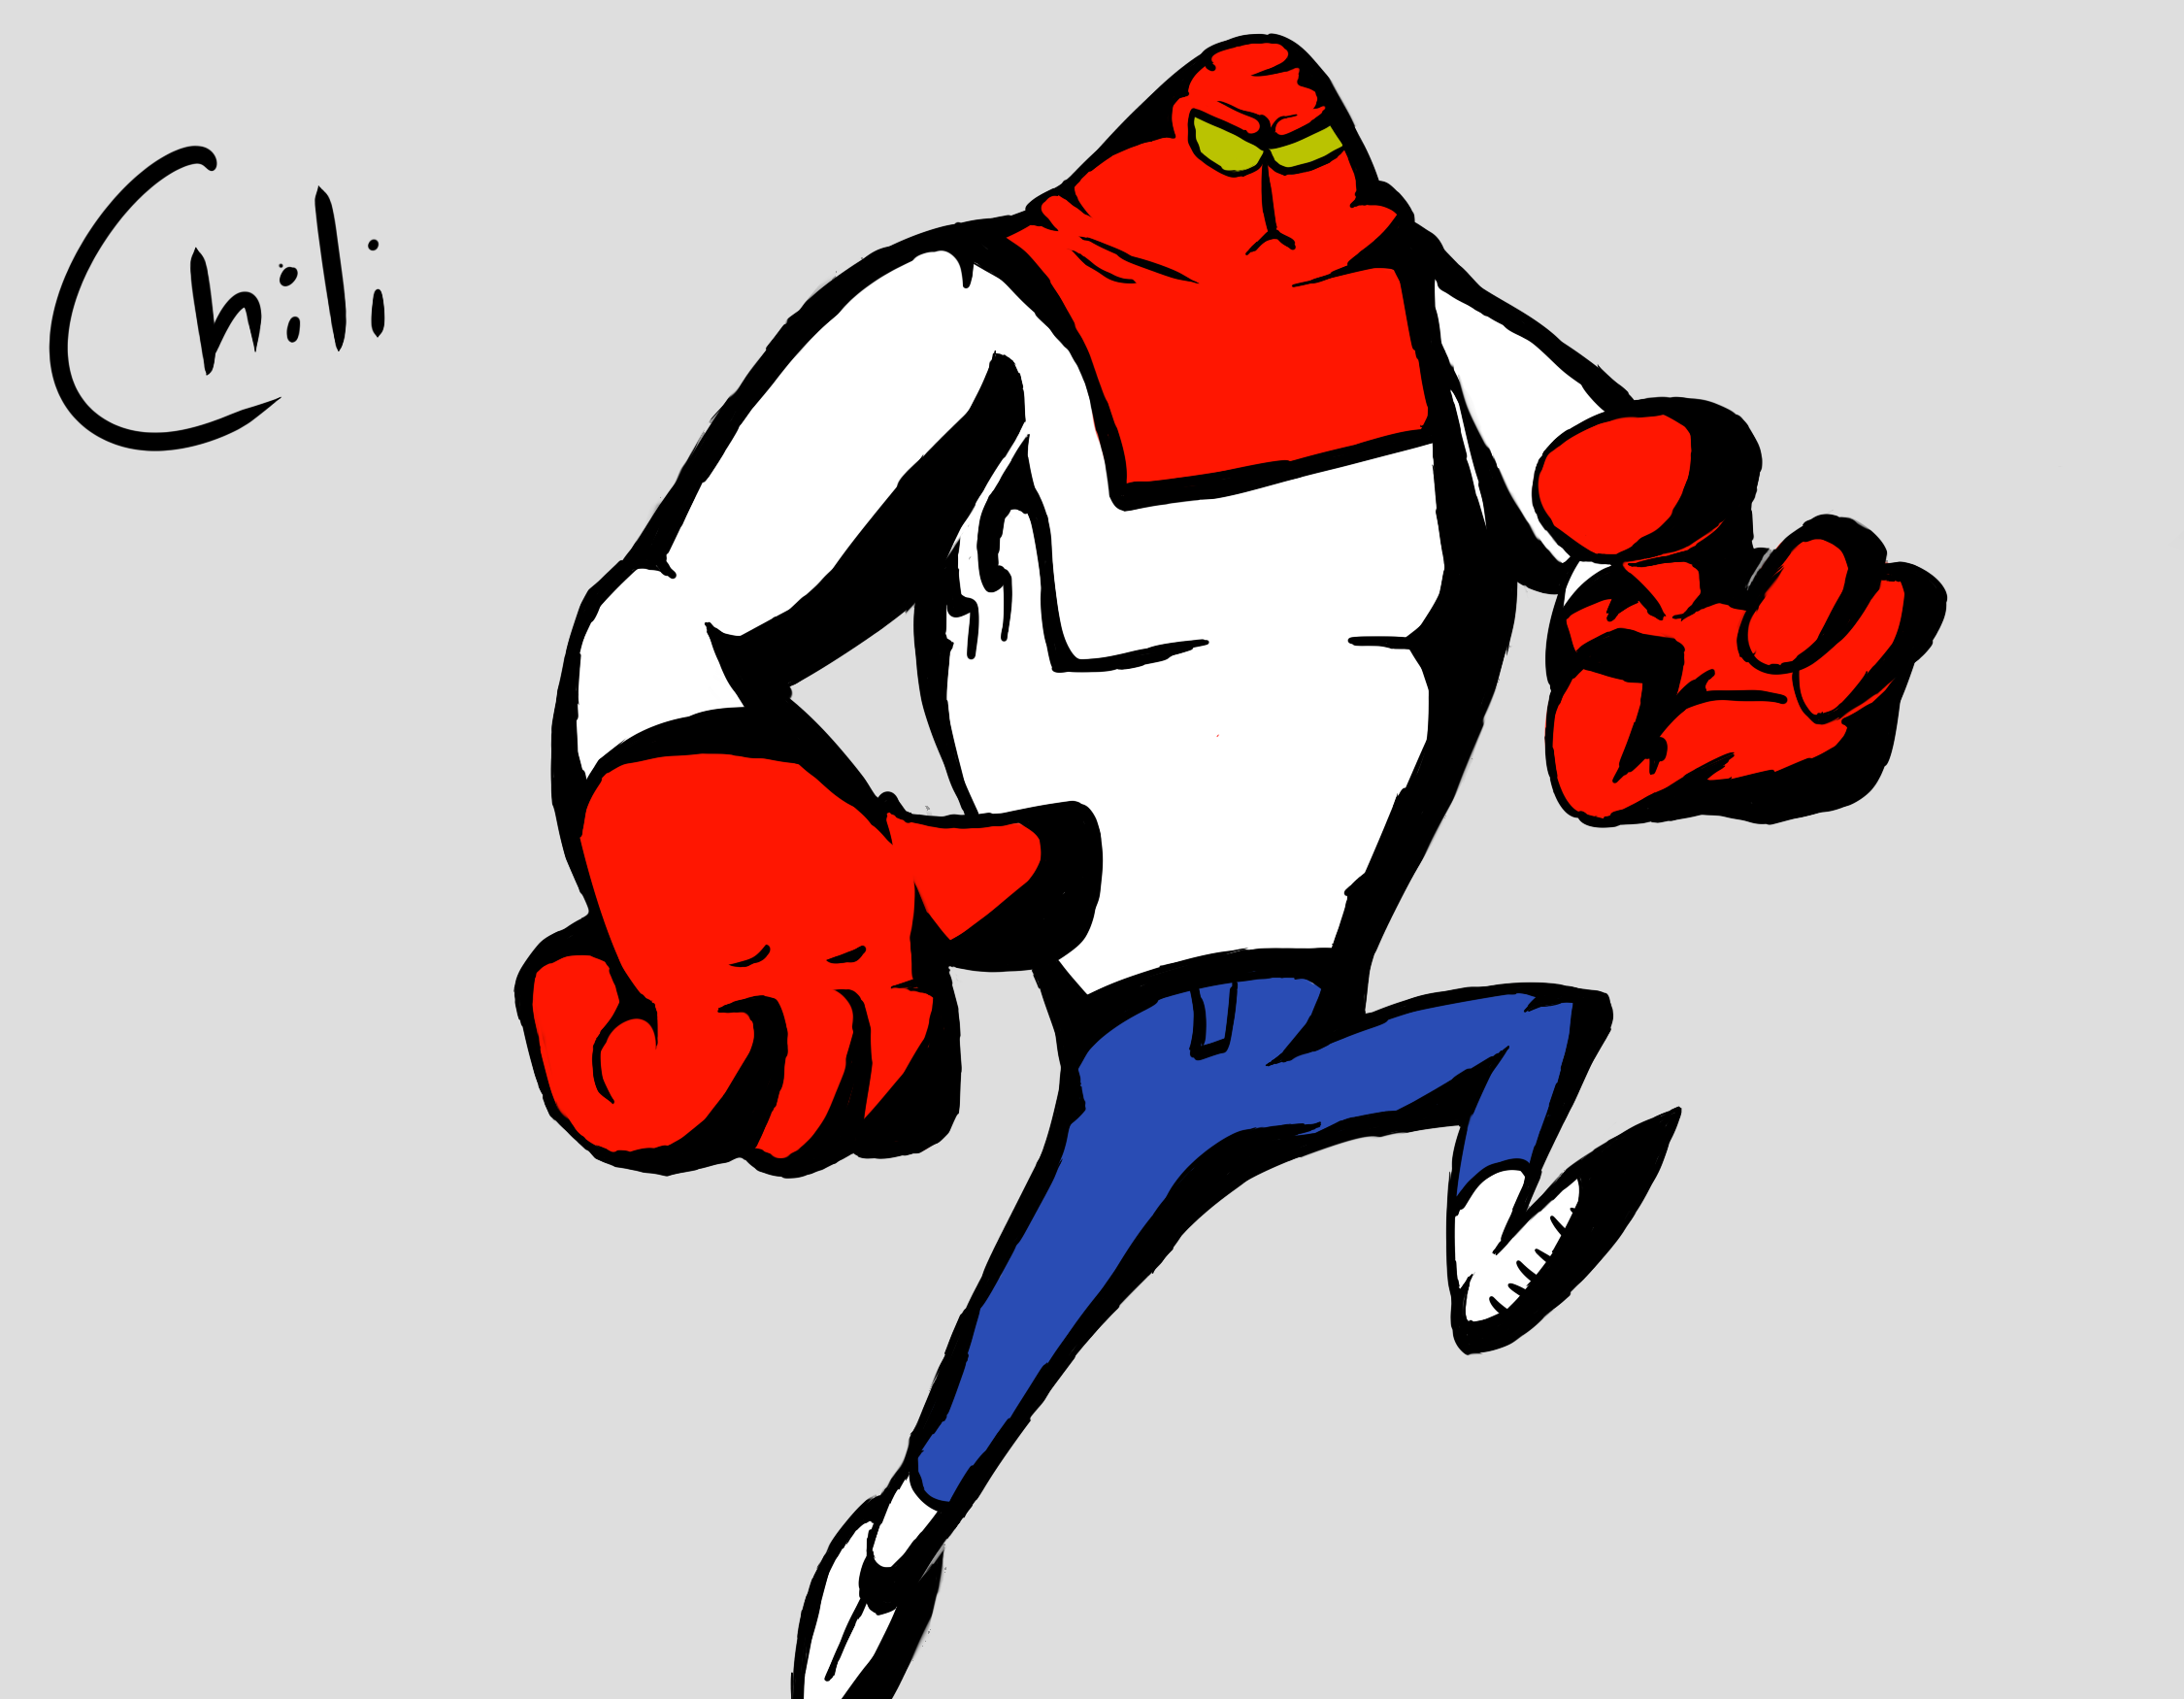 Chili, The Hero of Megalopolis